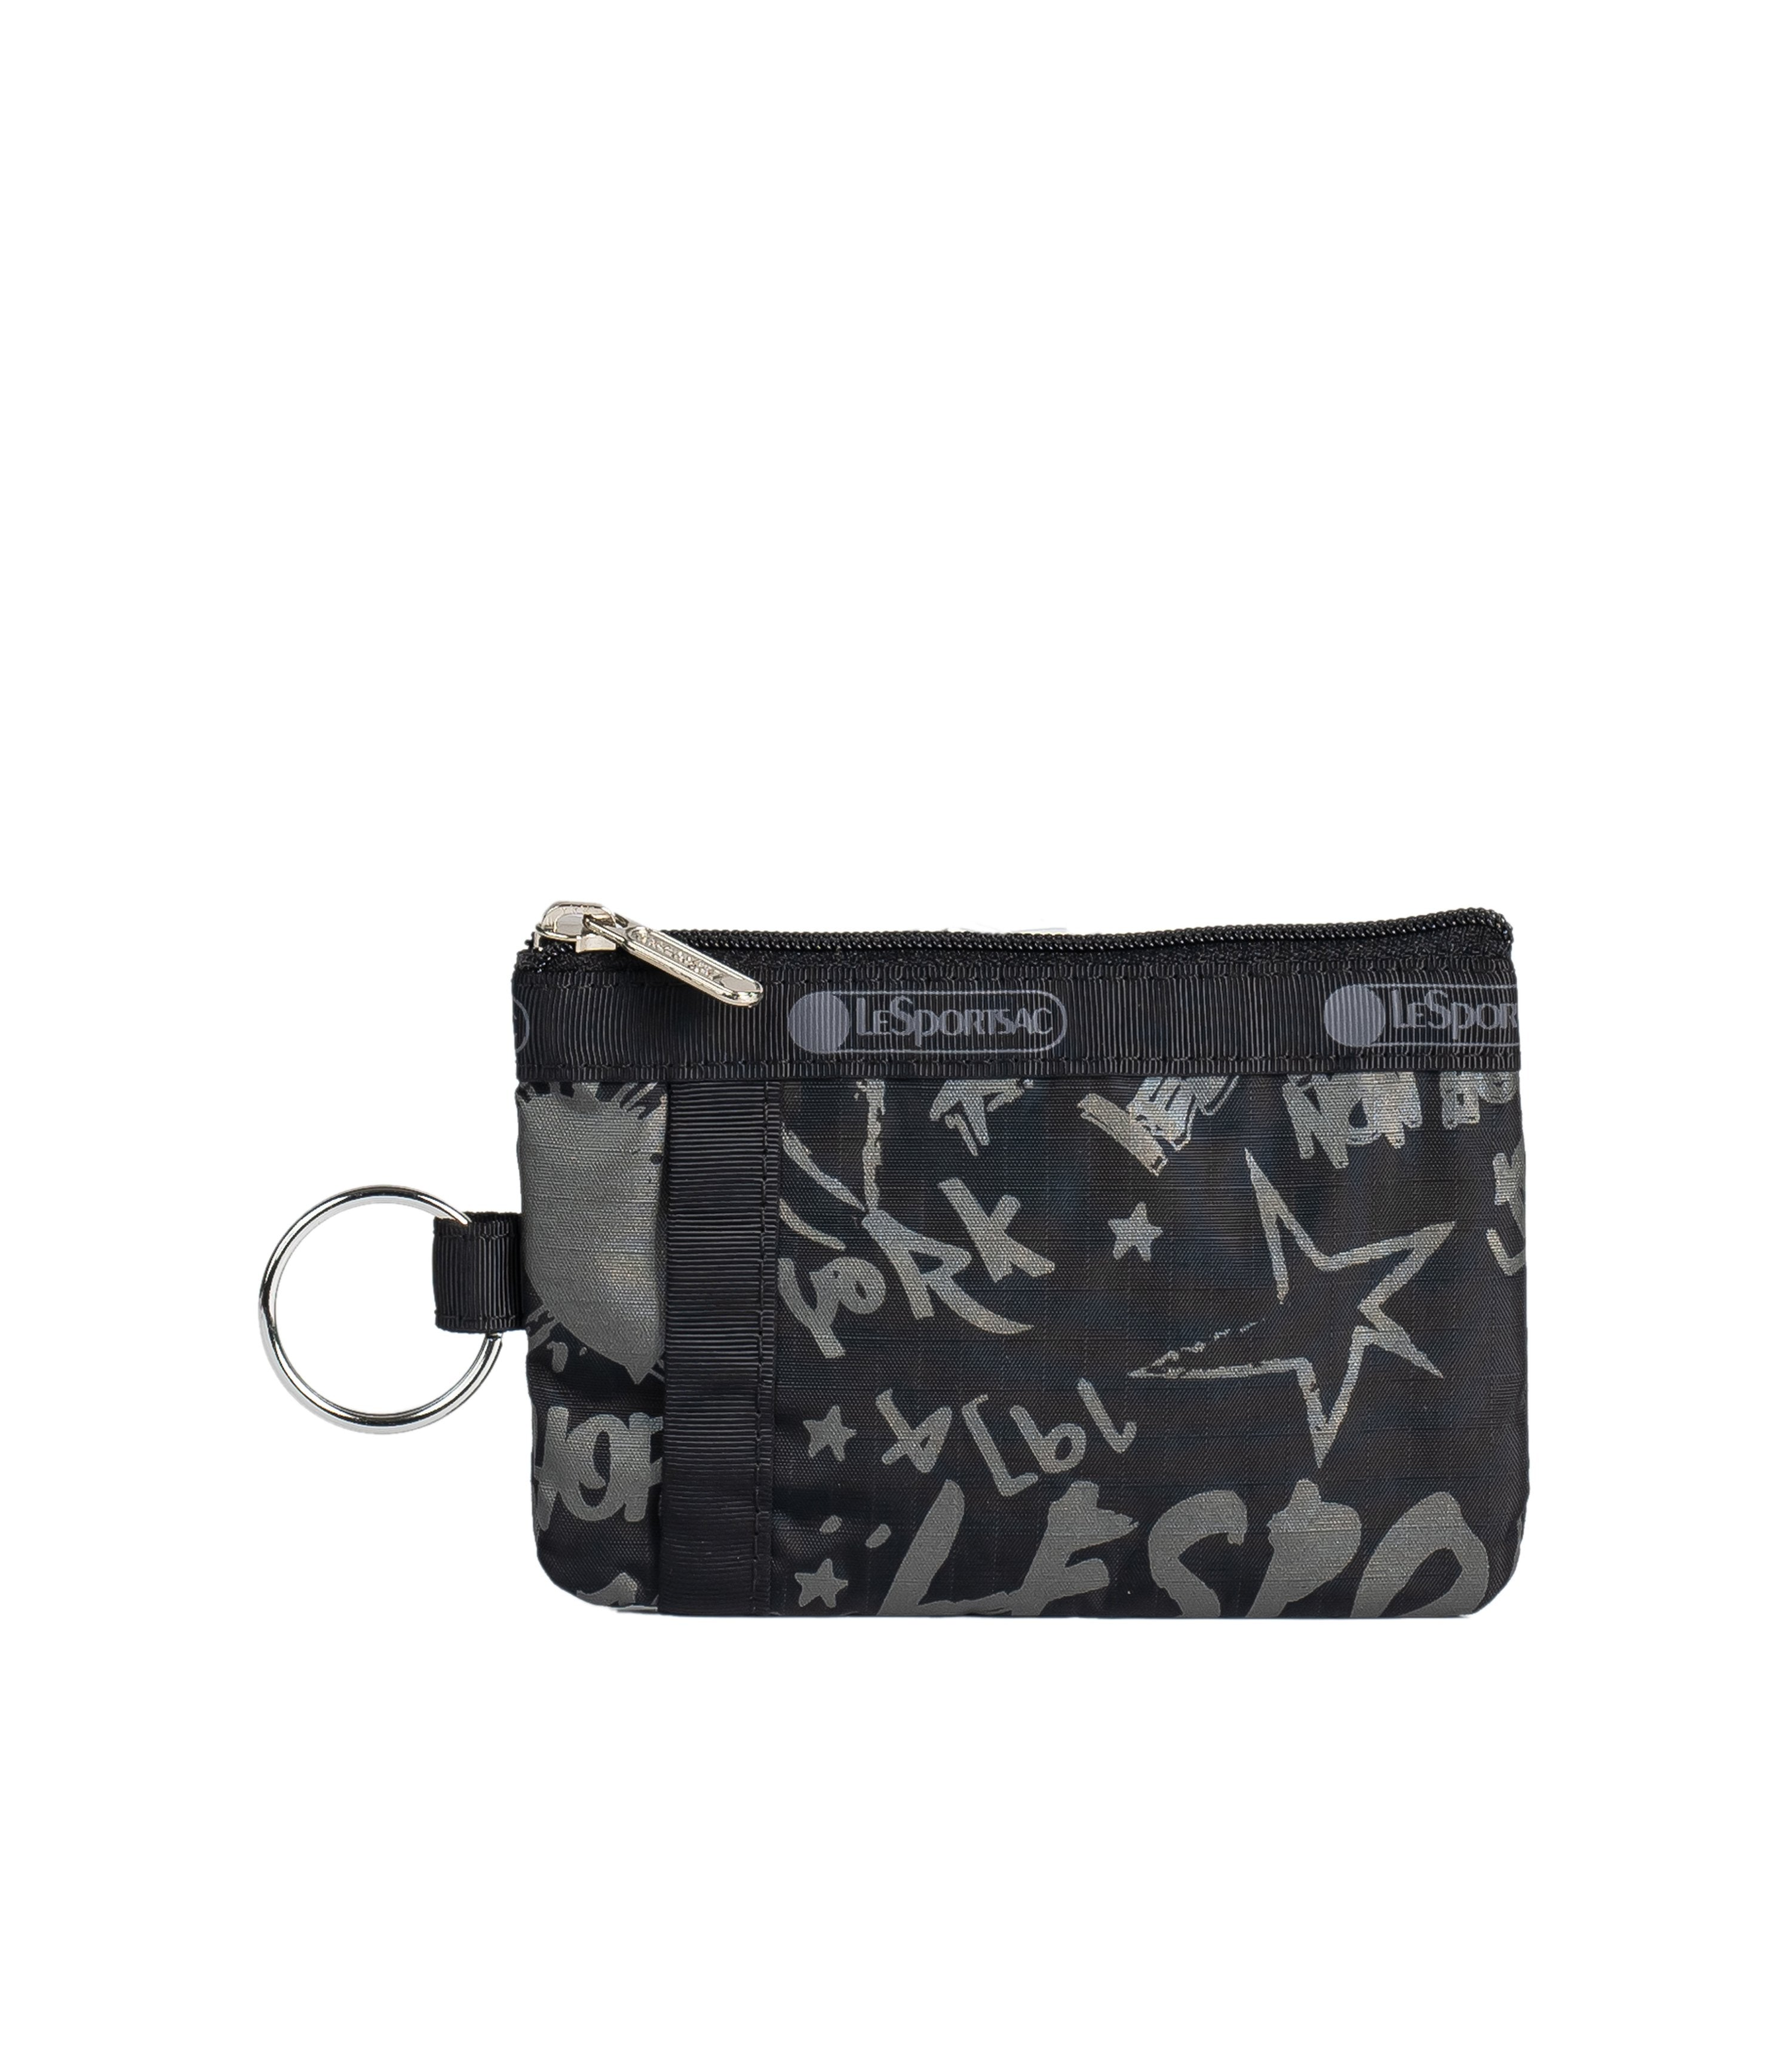 LeSportsac - Accessories - ID Card Case - LeSportsac City Script print